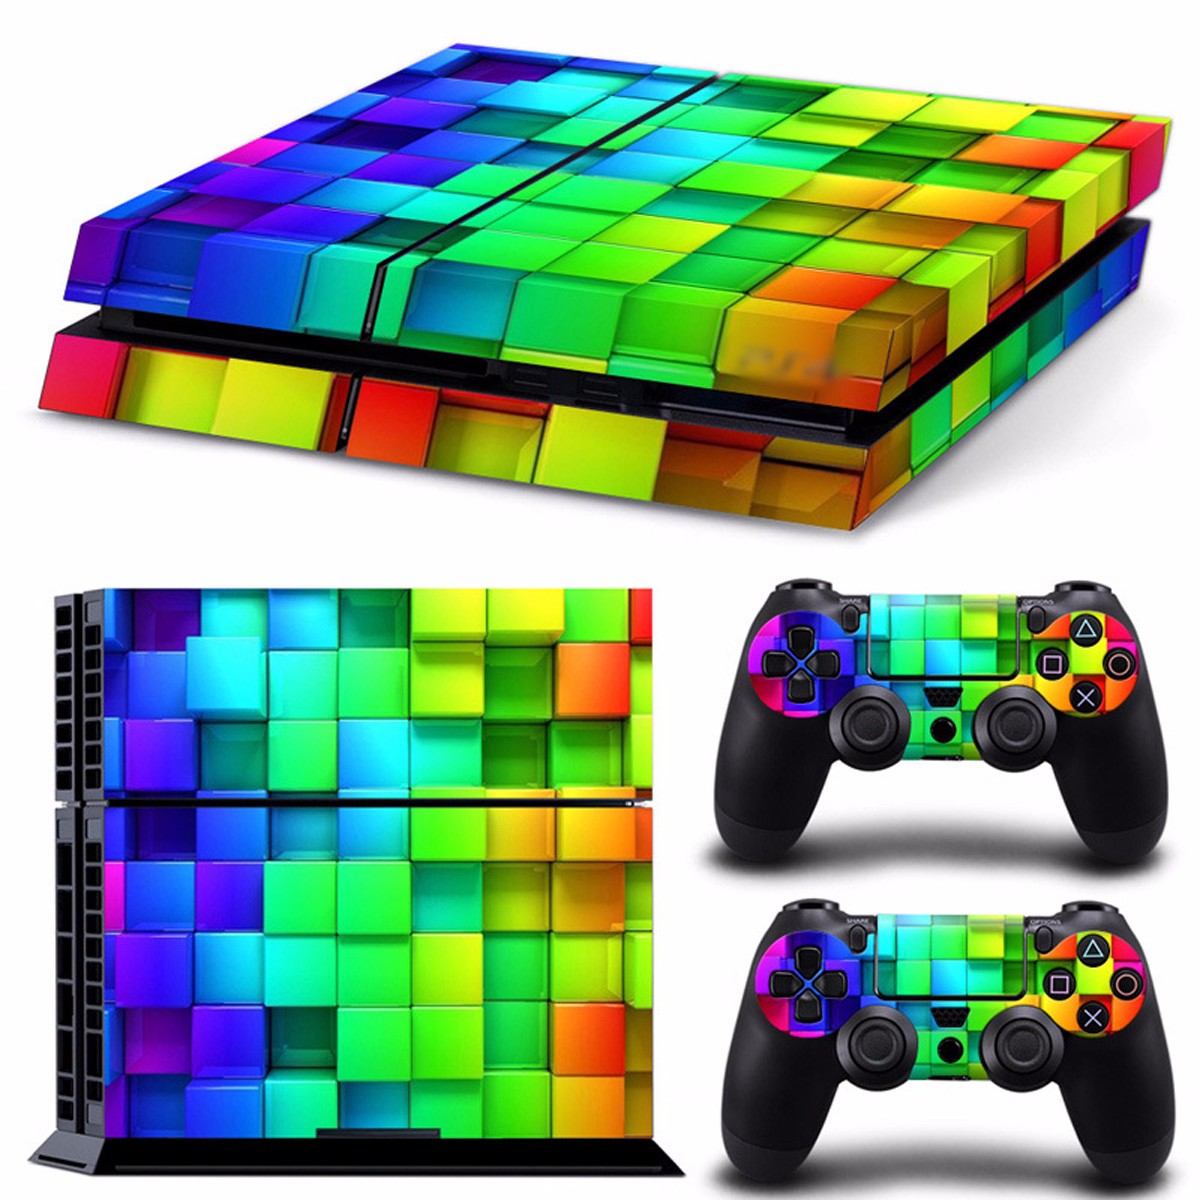 Lattice Style Vinyl Skin Decal For PS4 Play Station 4 C